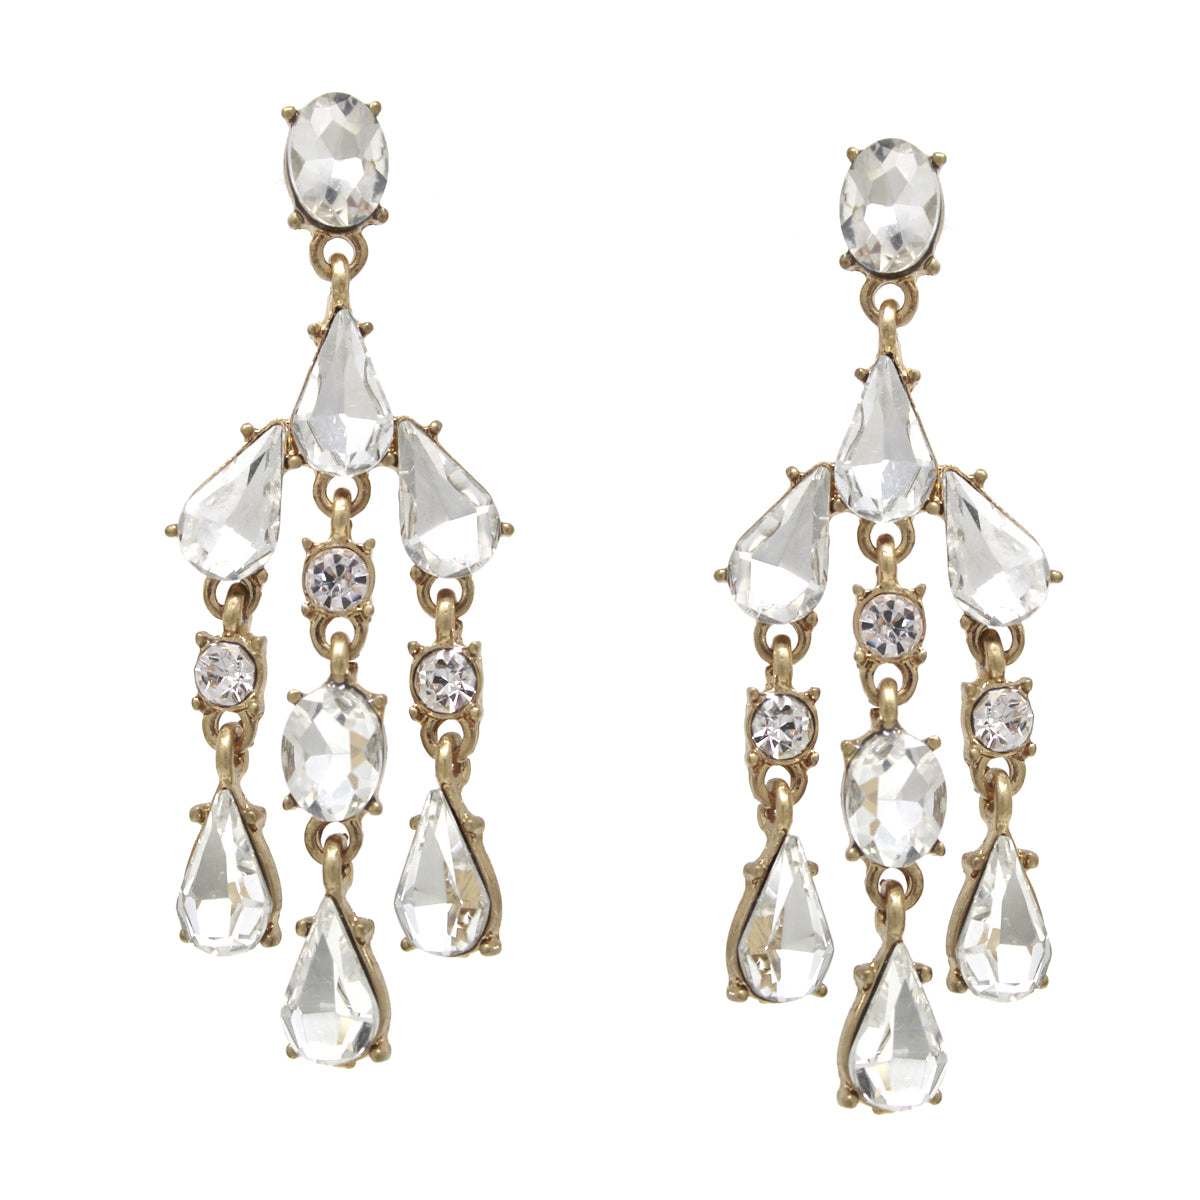 Rhinestone Pave Chandelier Drop Earrings